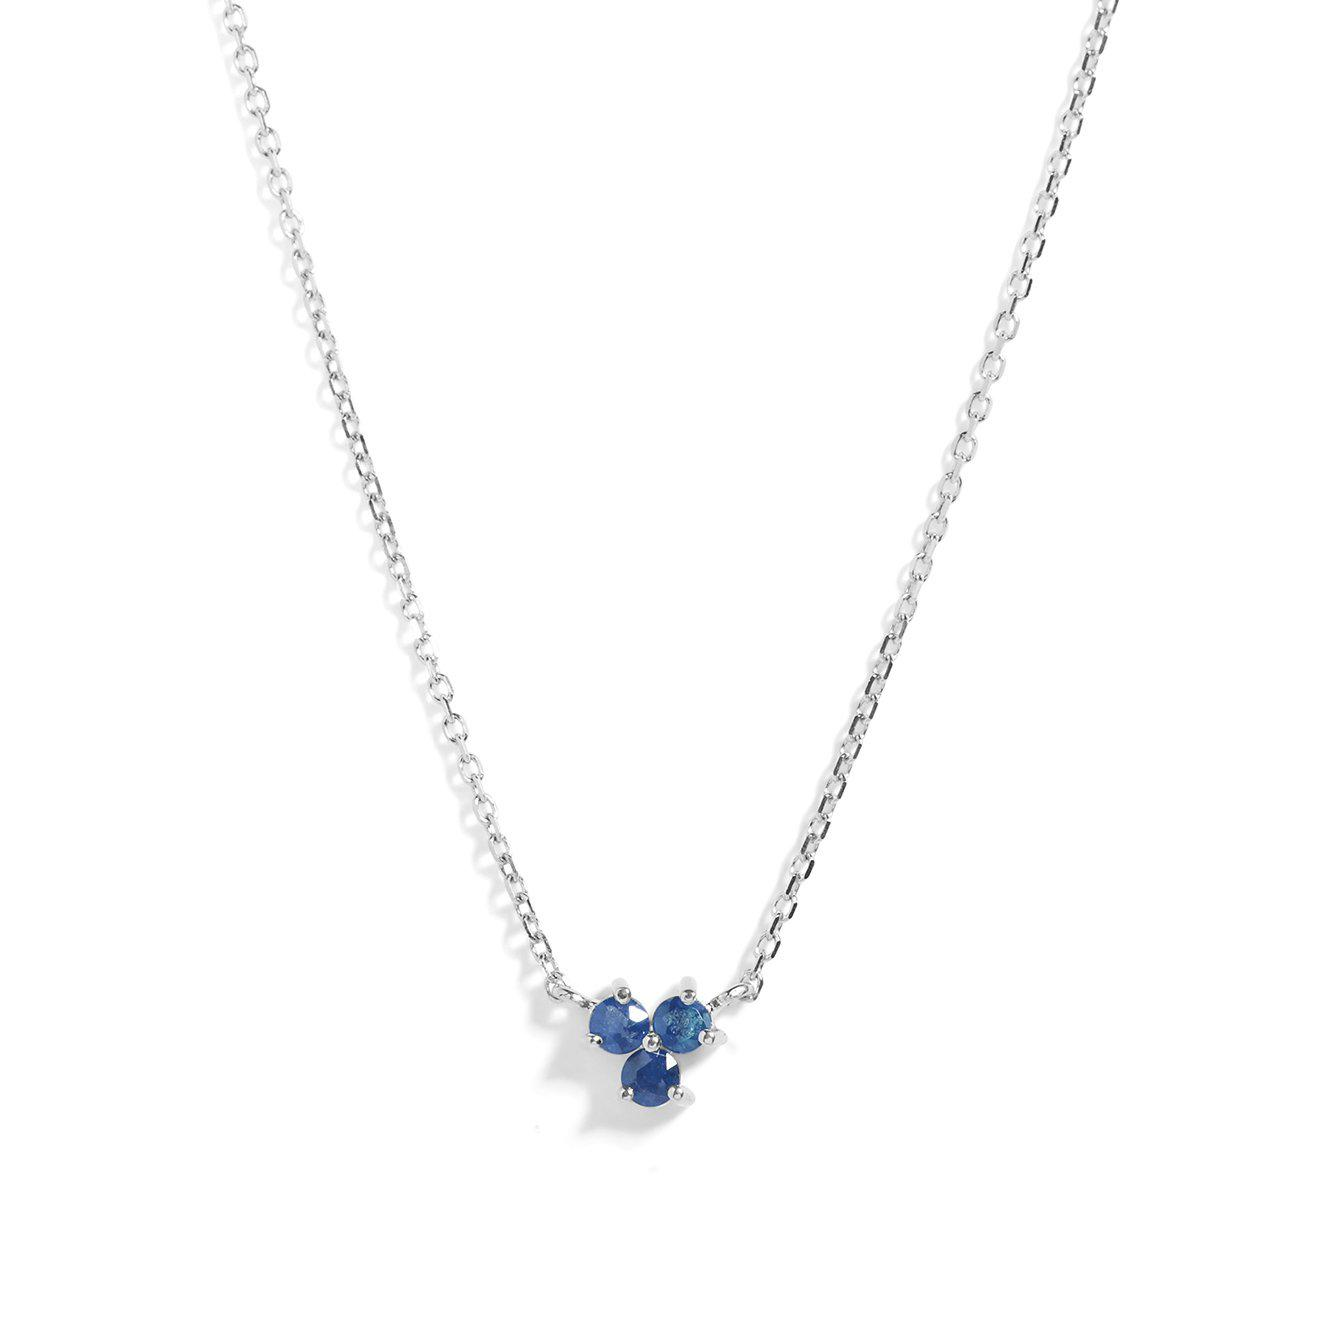 The Trio Tanzanite Necklace in Silver